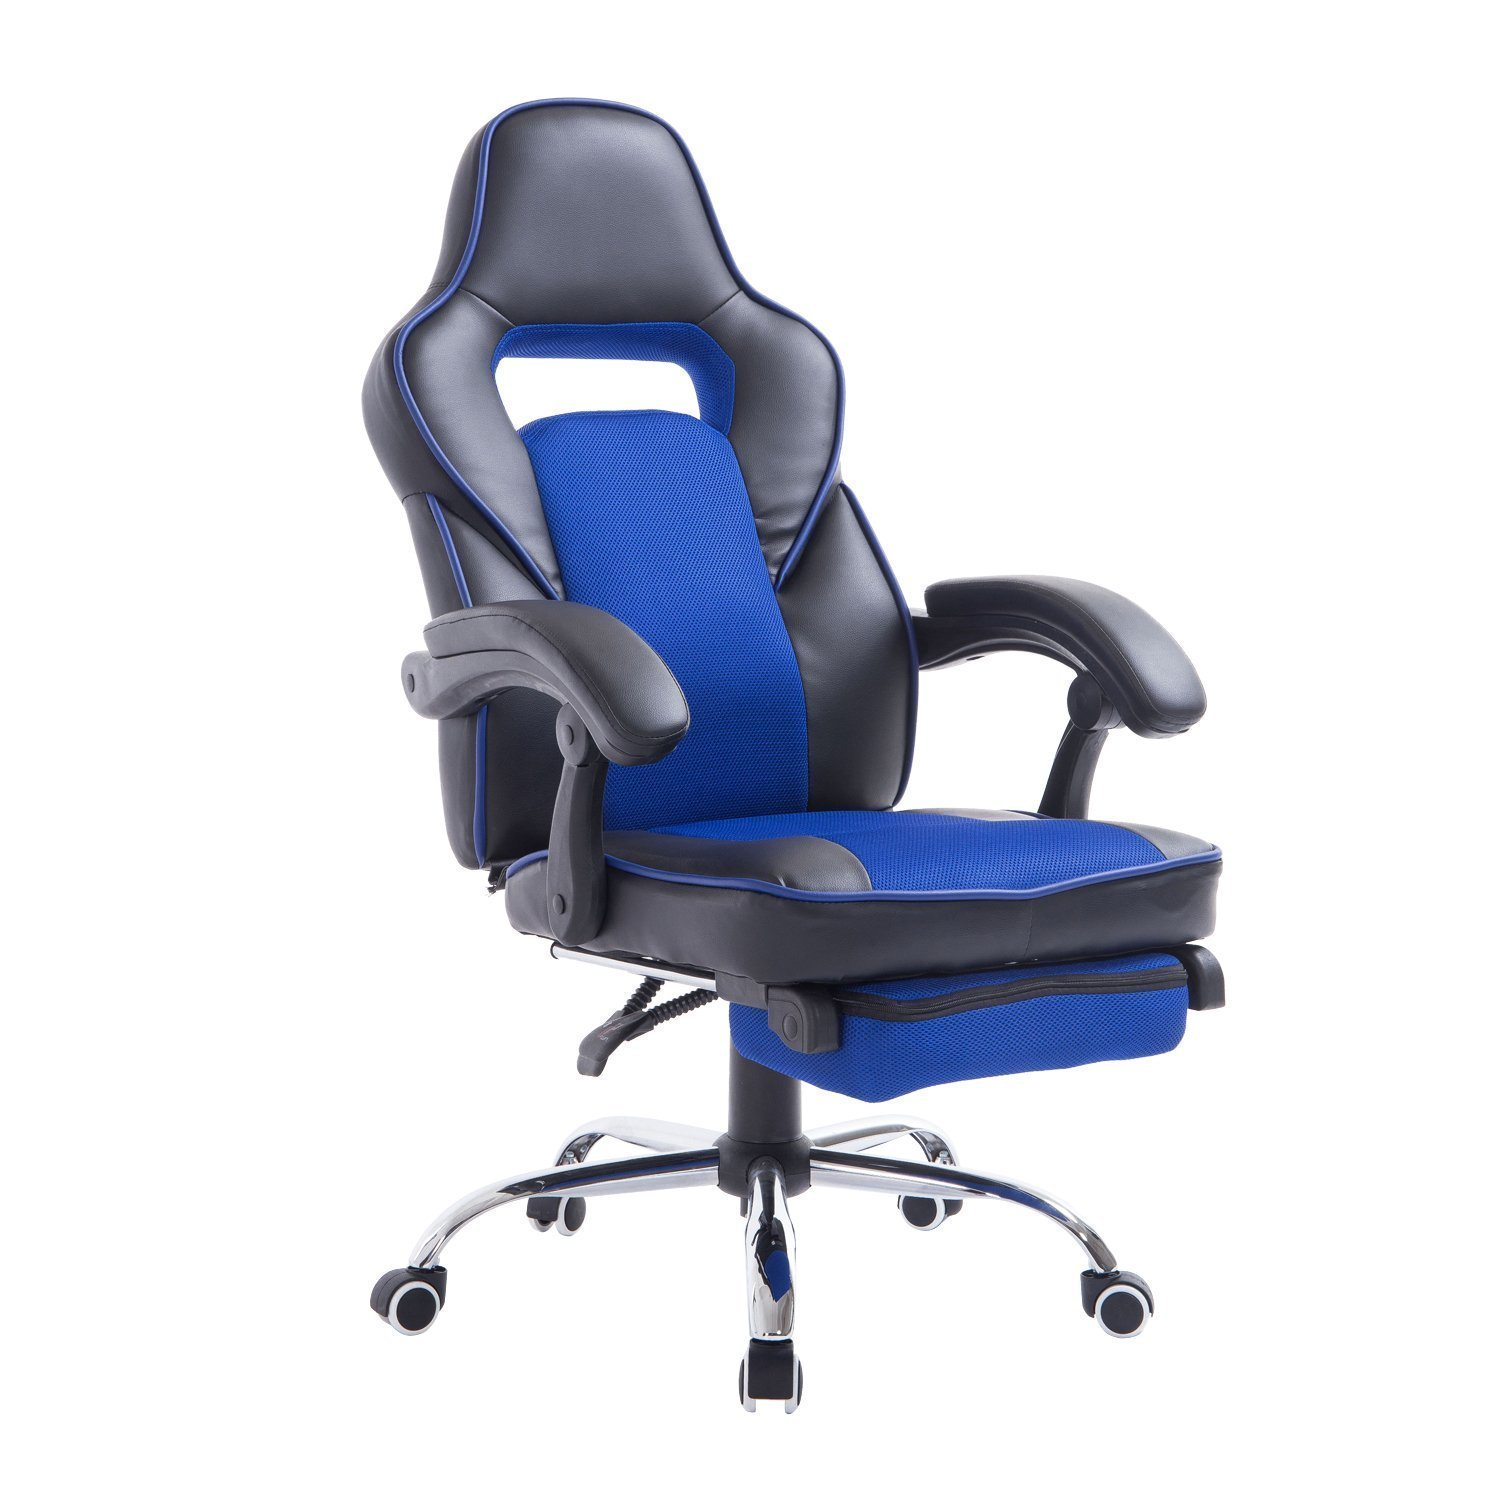 office reclining chair. HomCom Race Car Style High Back PU Leather Reclining Office Chair With Footrest - Blue And R